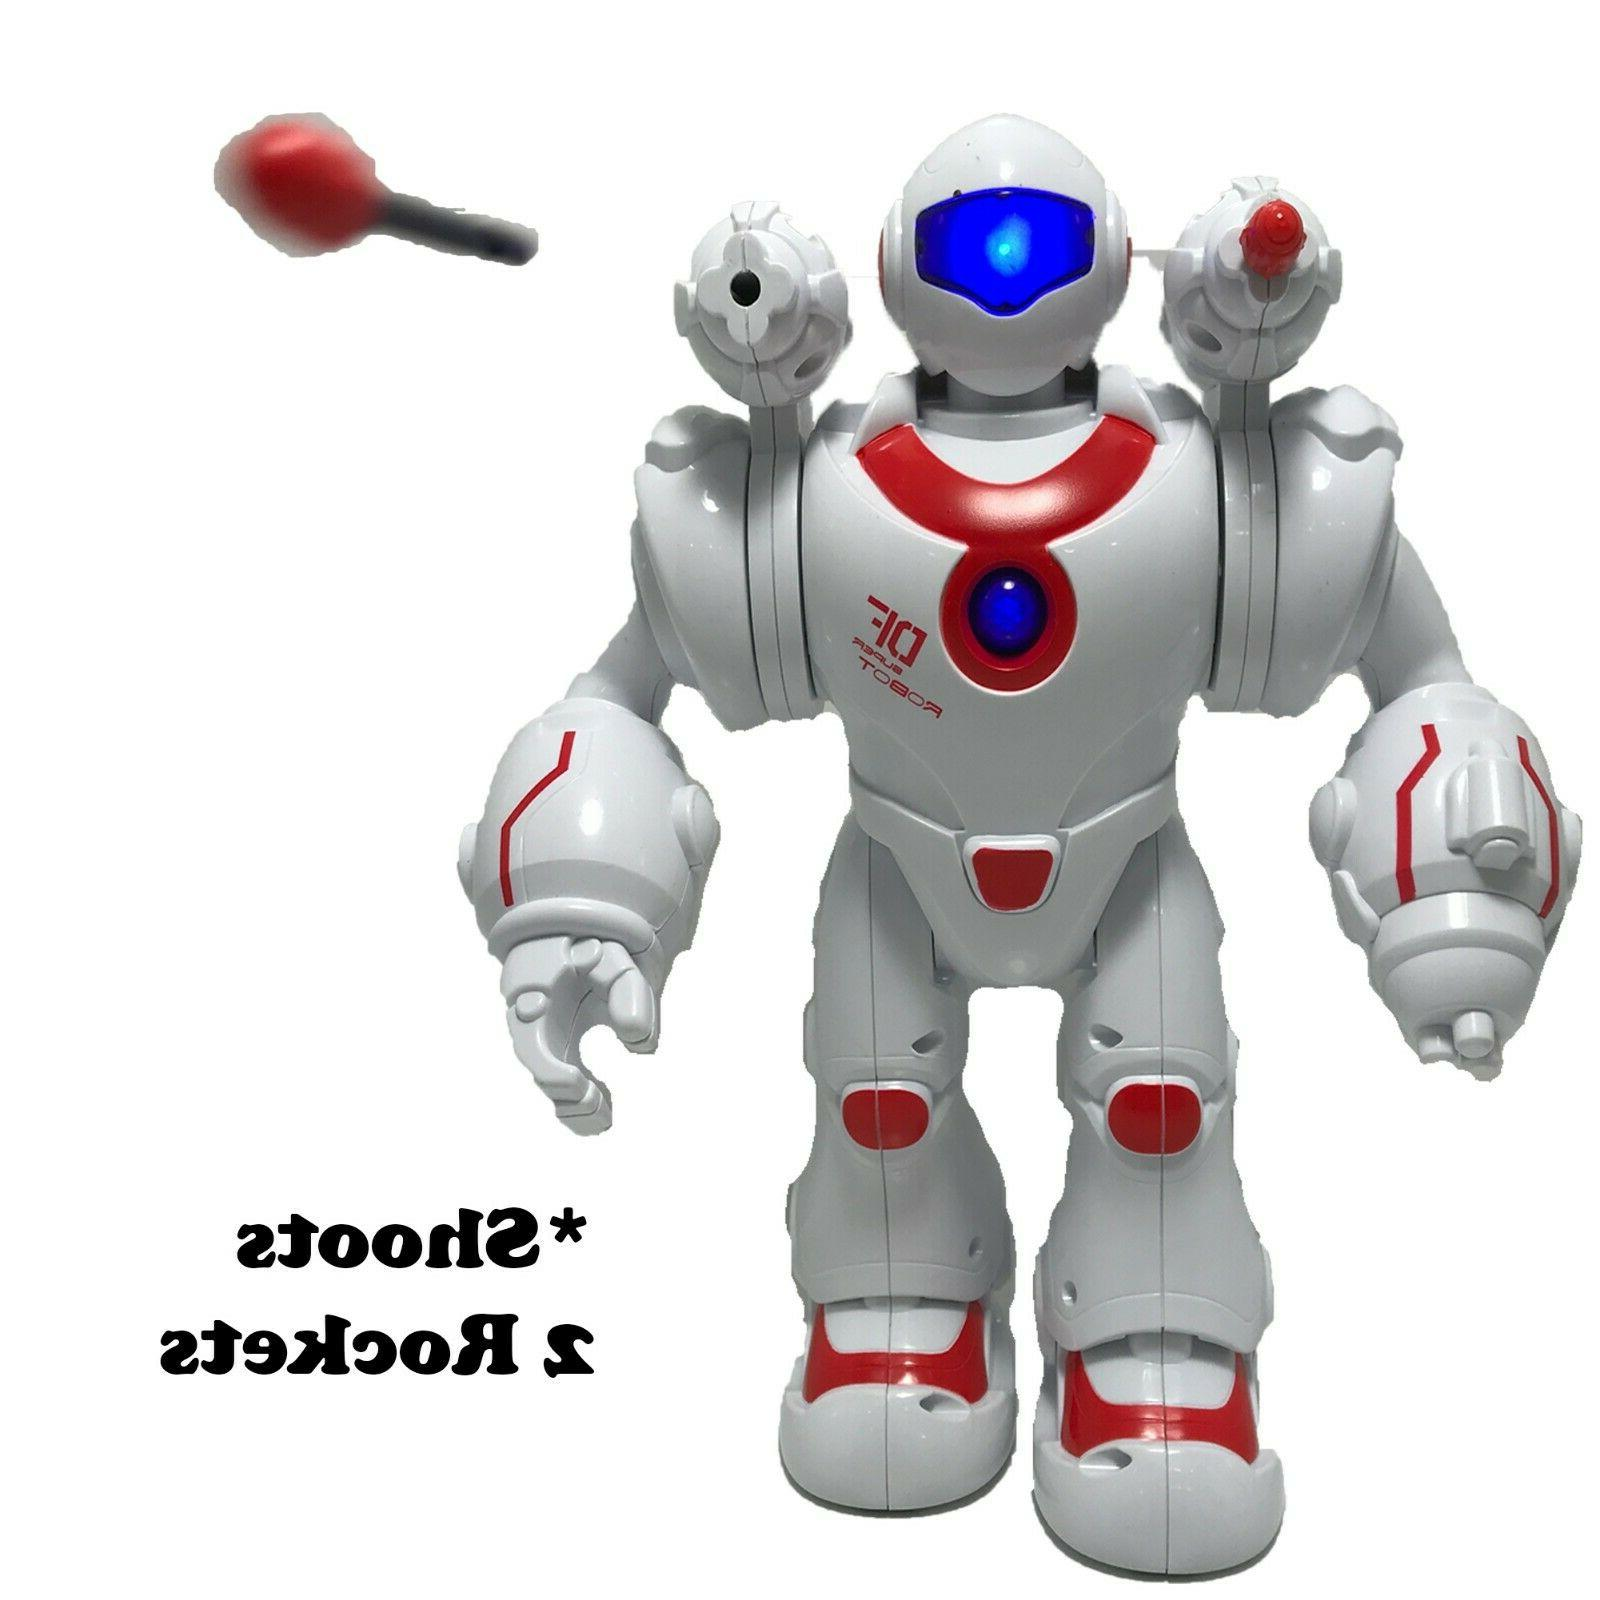 toy robot walks and shoots 2 plastic